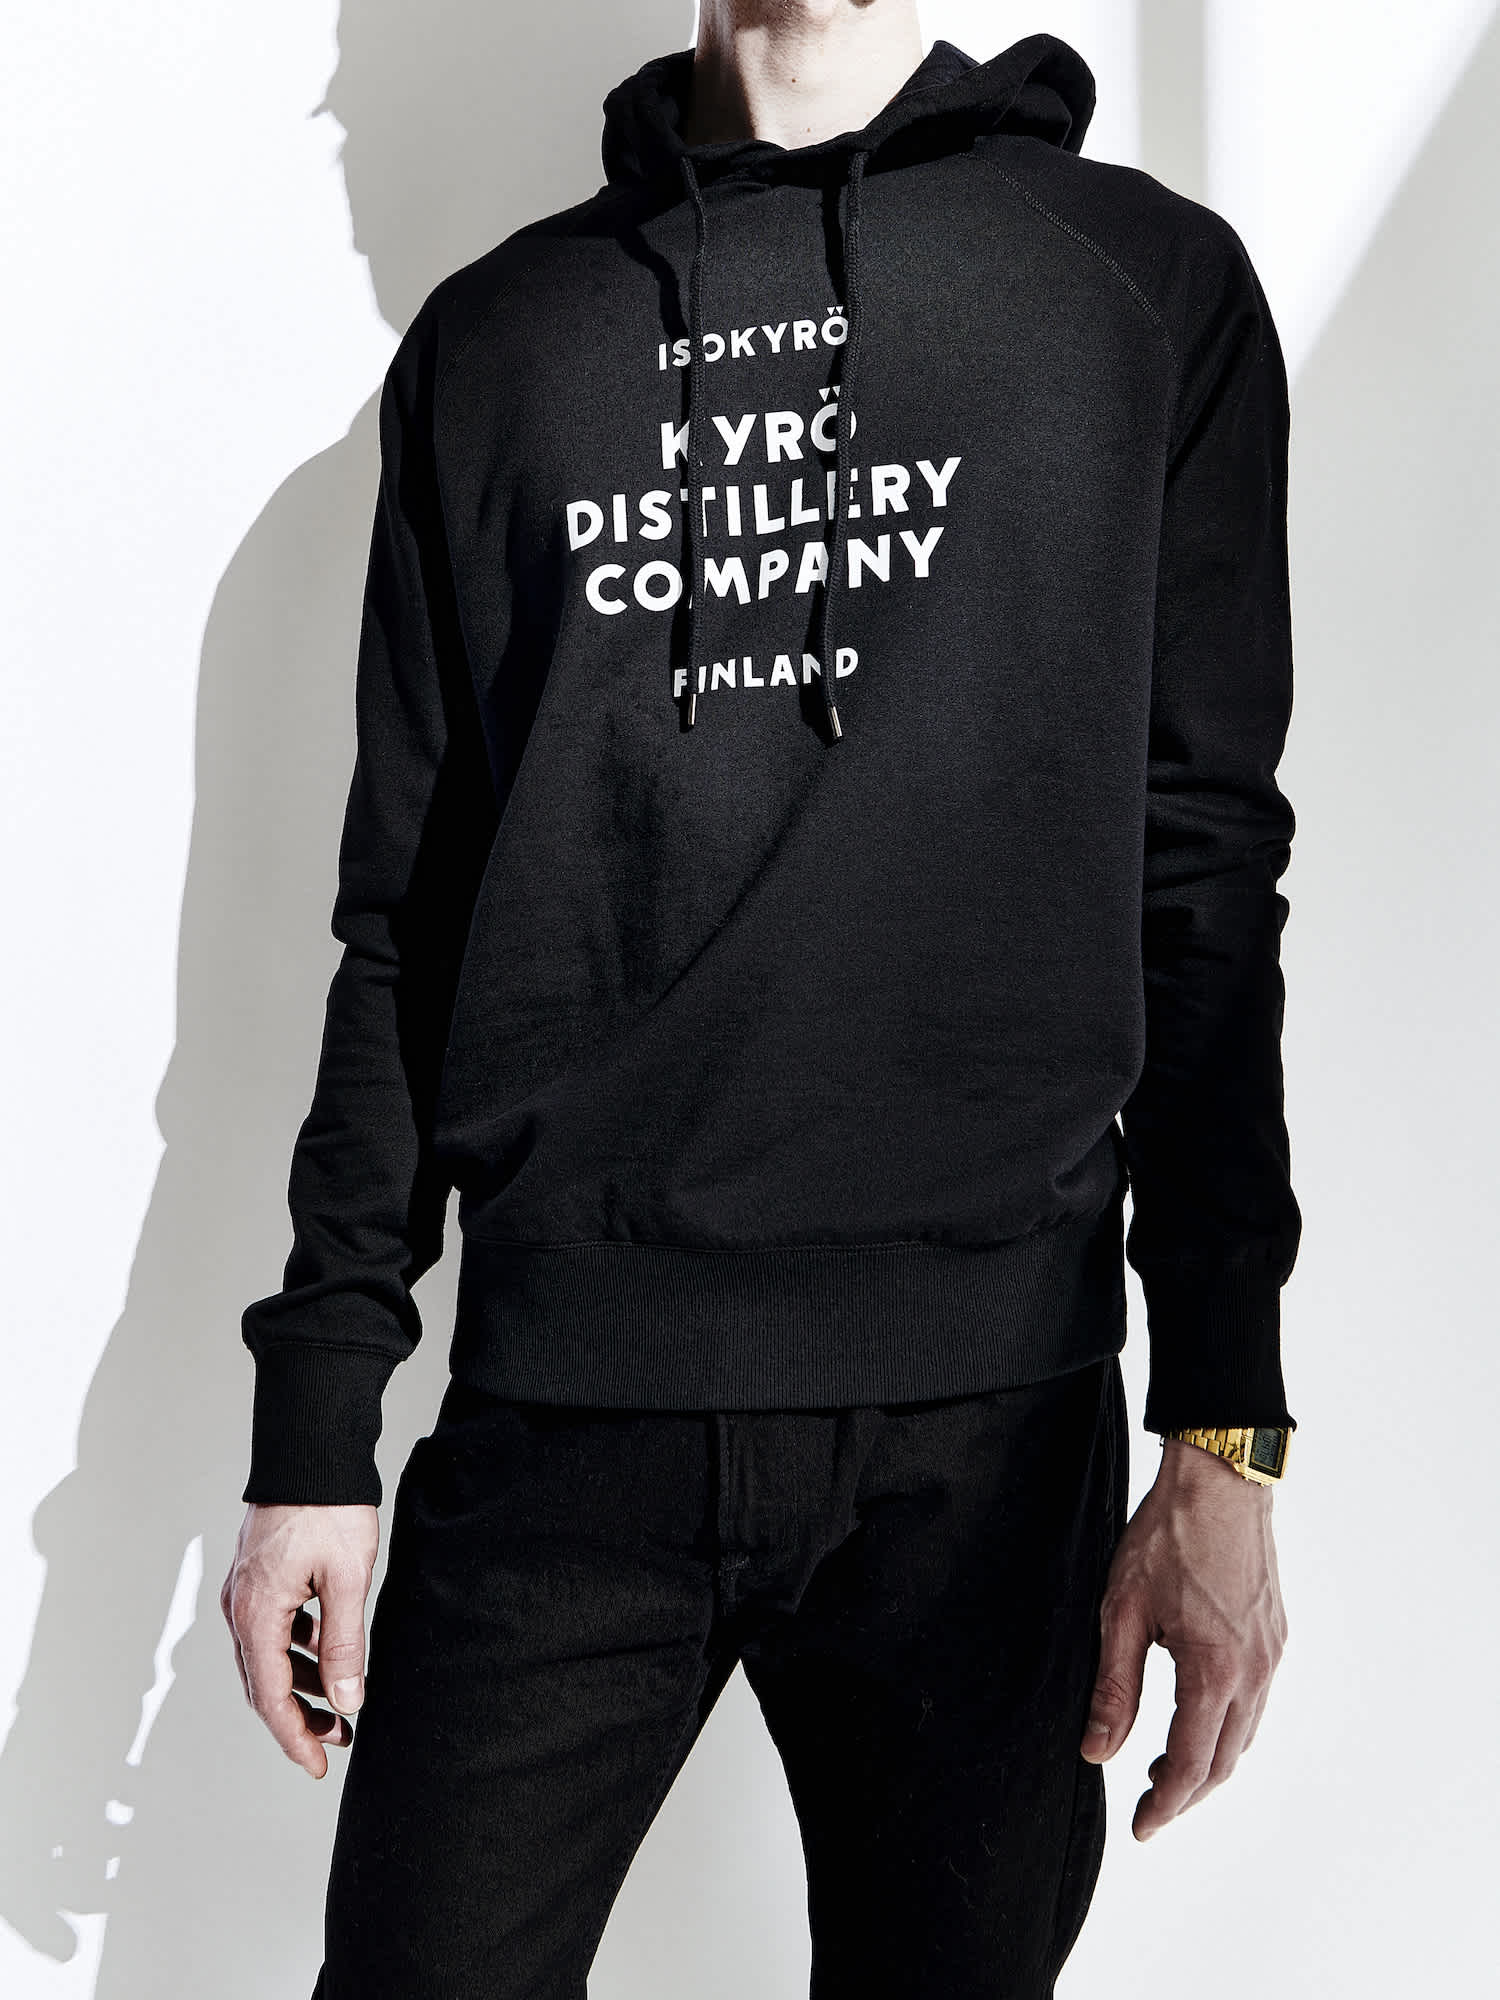 A white, male model wearing a black sweater. The Kyrö logo is displayed in white across the chest.